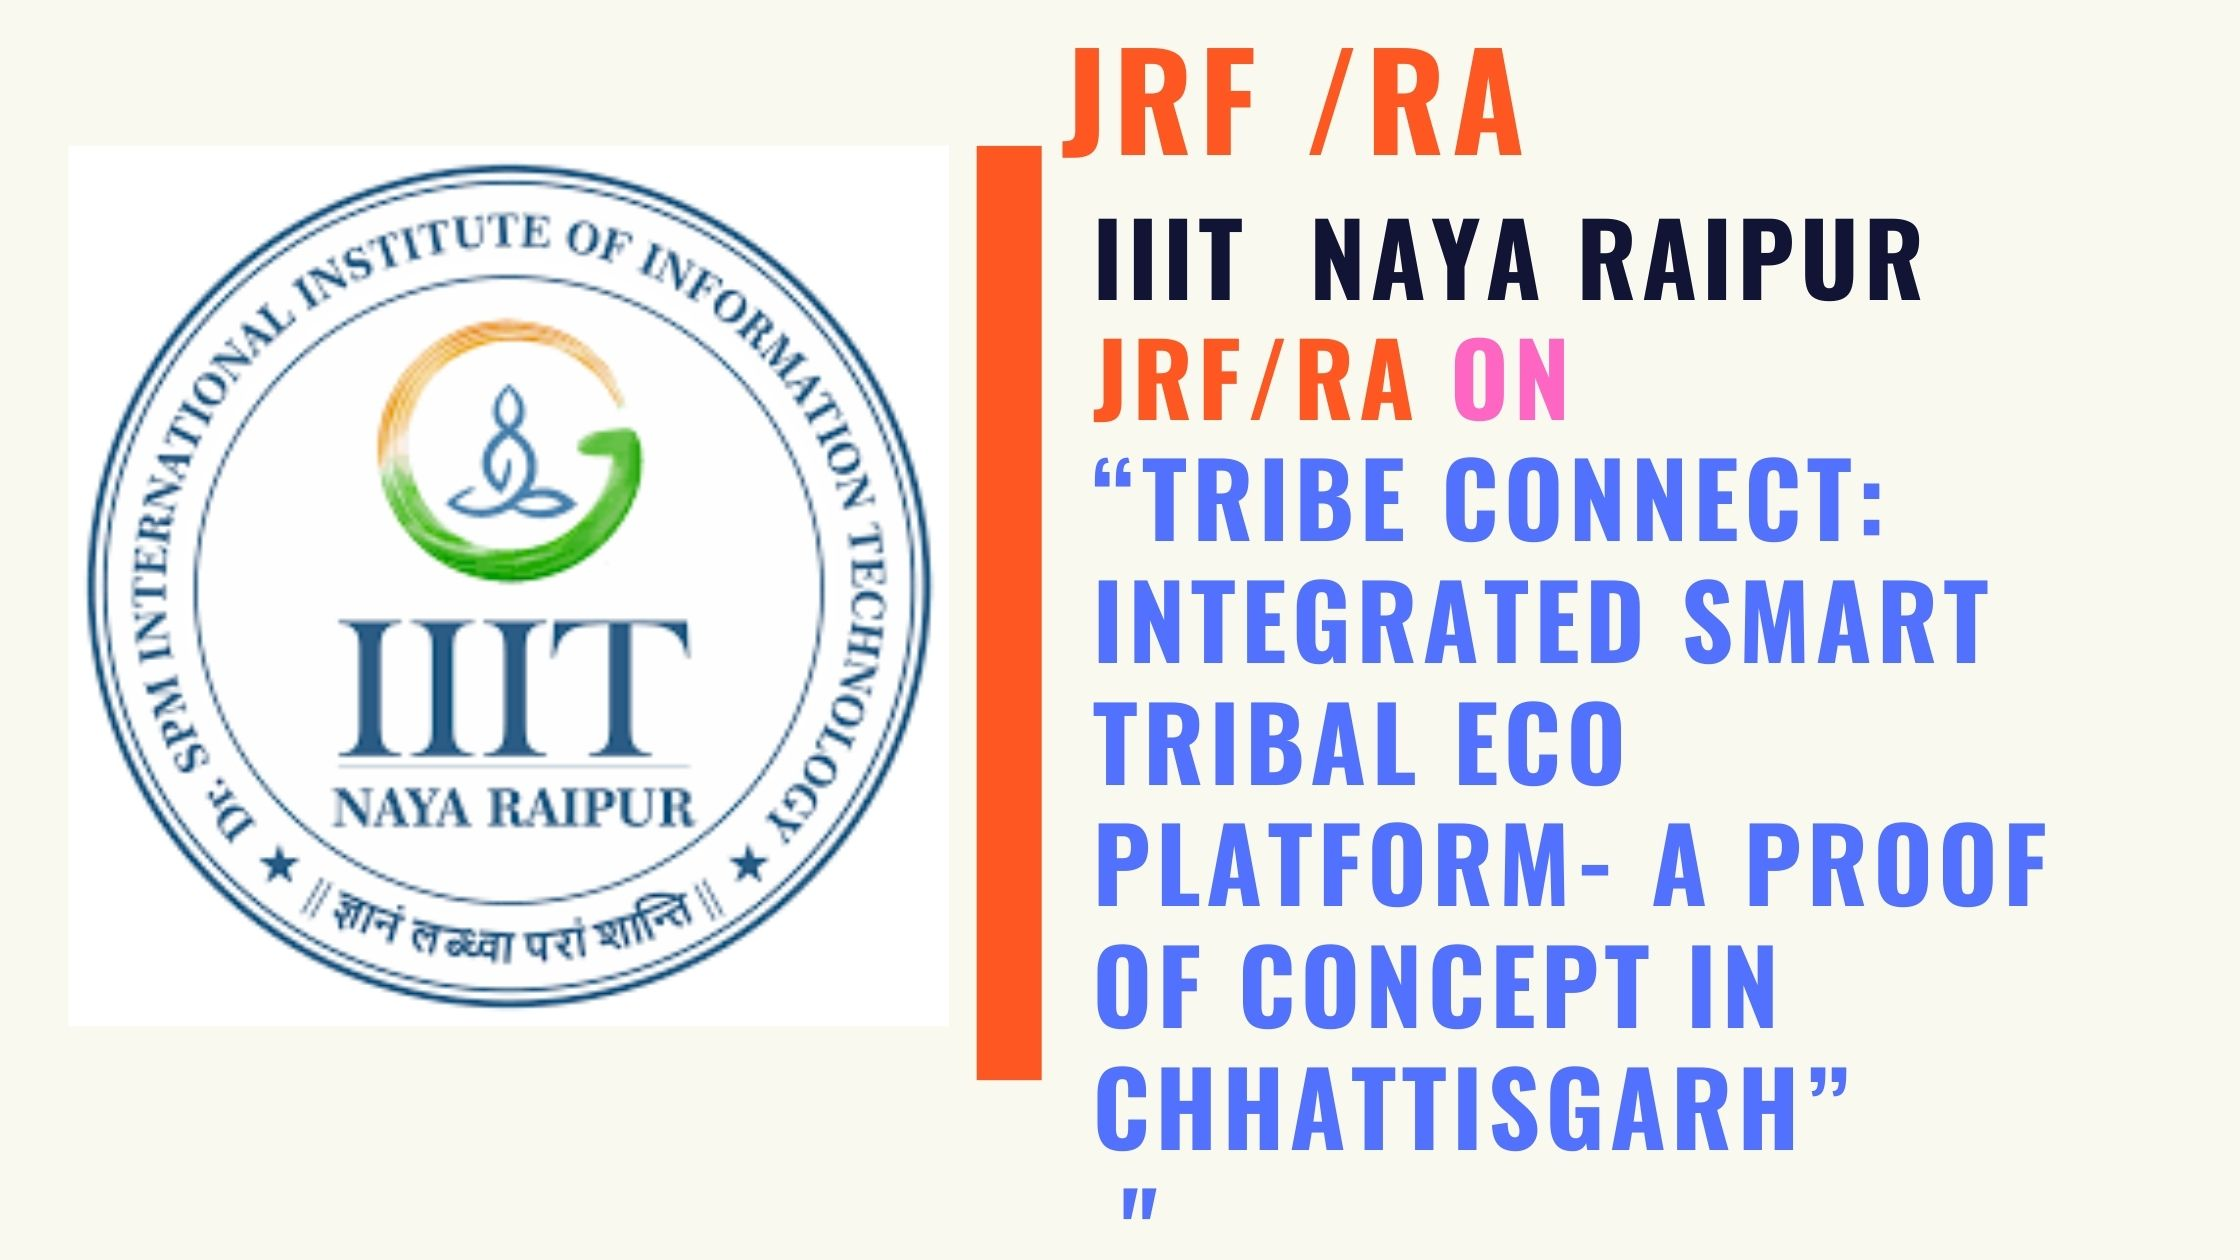 IIIT Nayaraipur JRF and RA Recruitment in Project